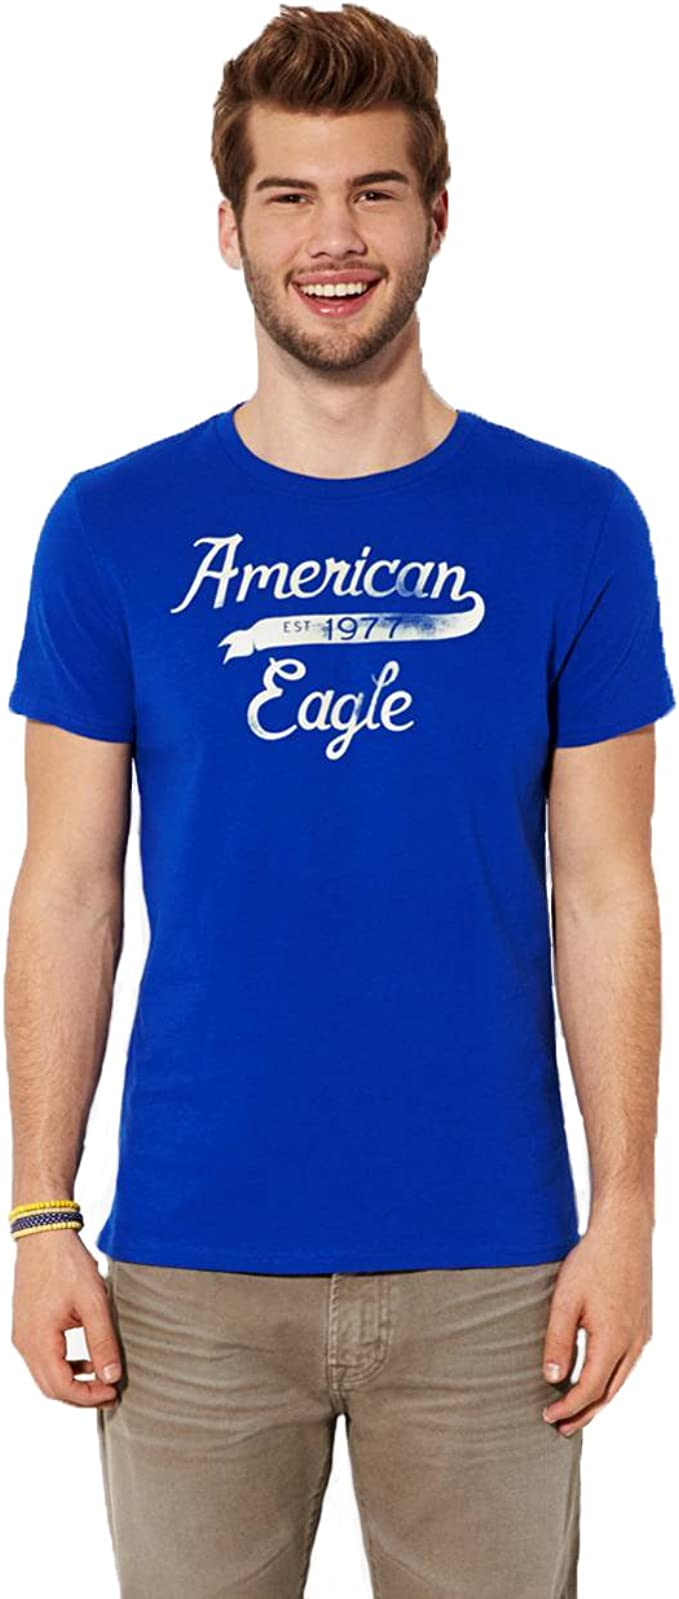 American Eagle Outfitters - Camiseta - para Hombre Azul Color 867 ...